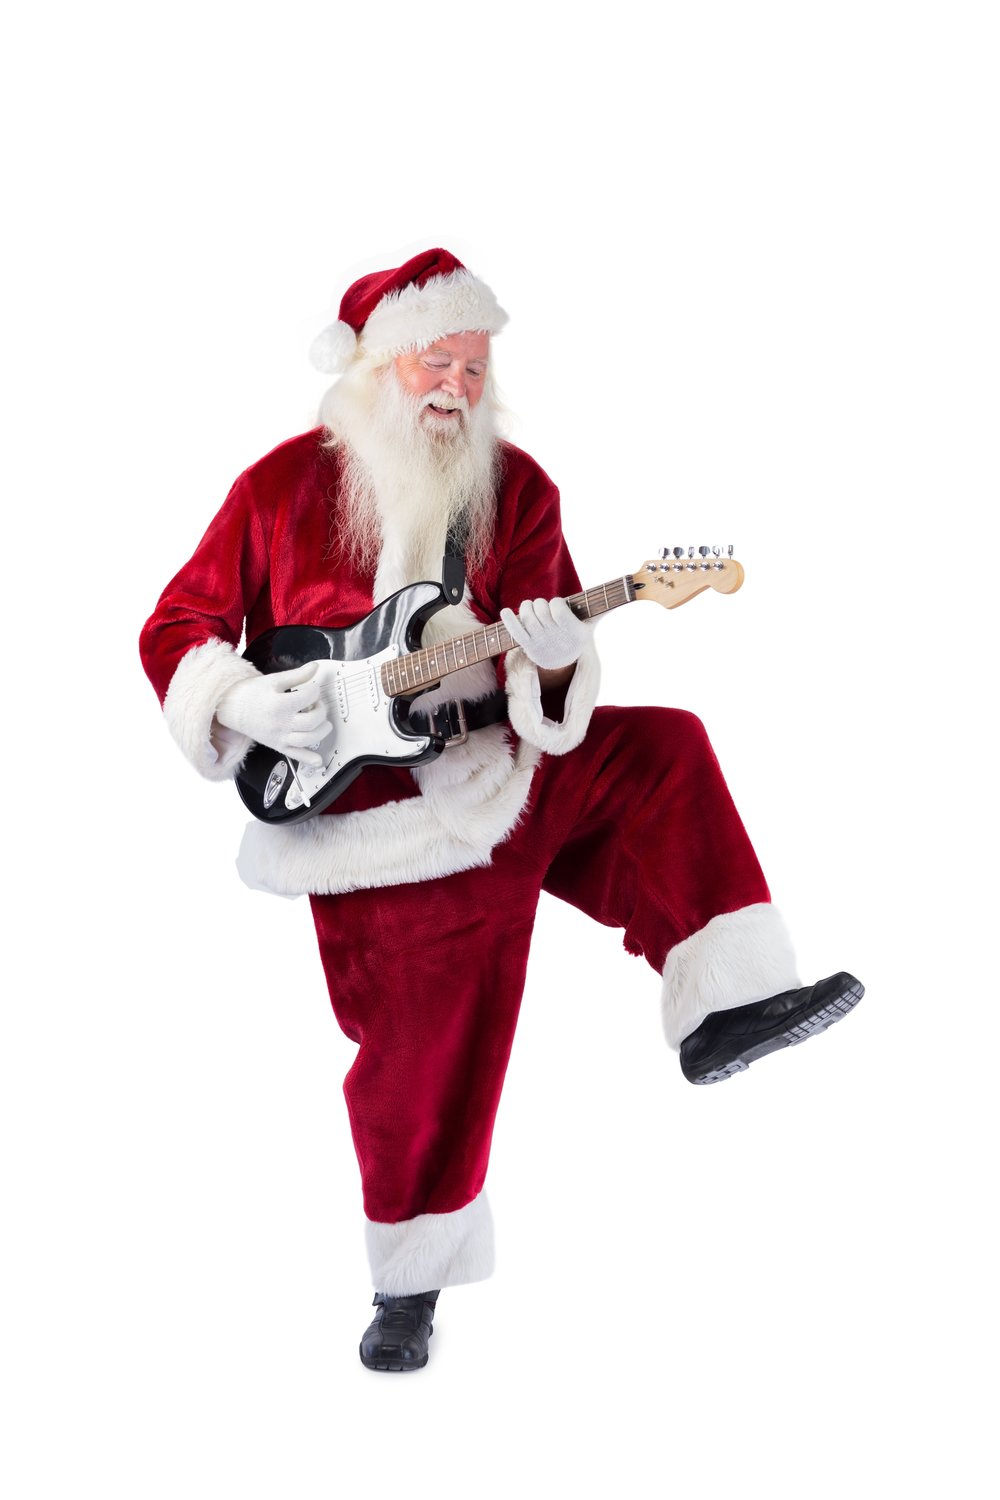 Santa Claus has fun with a guitar